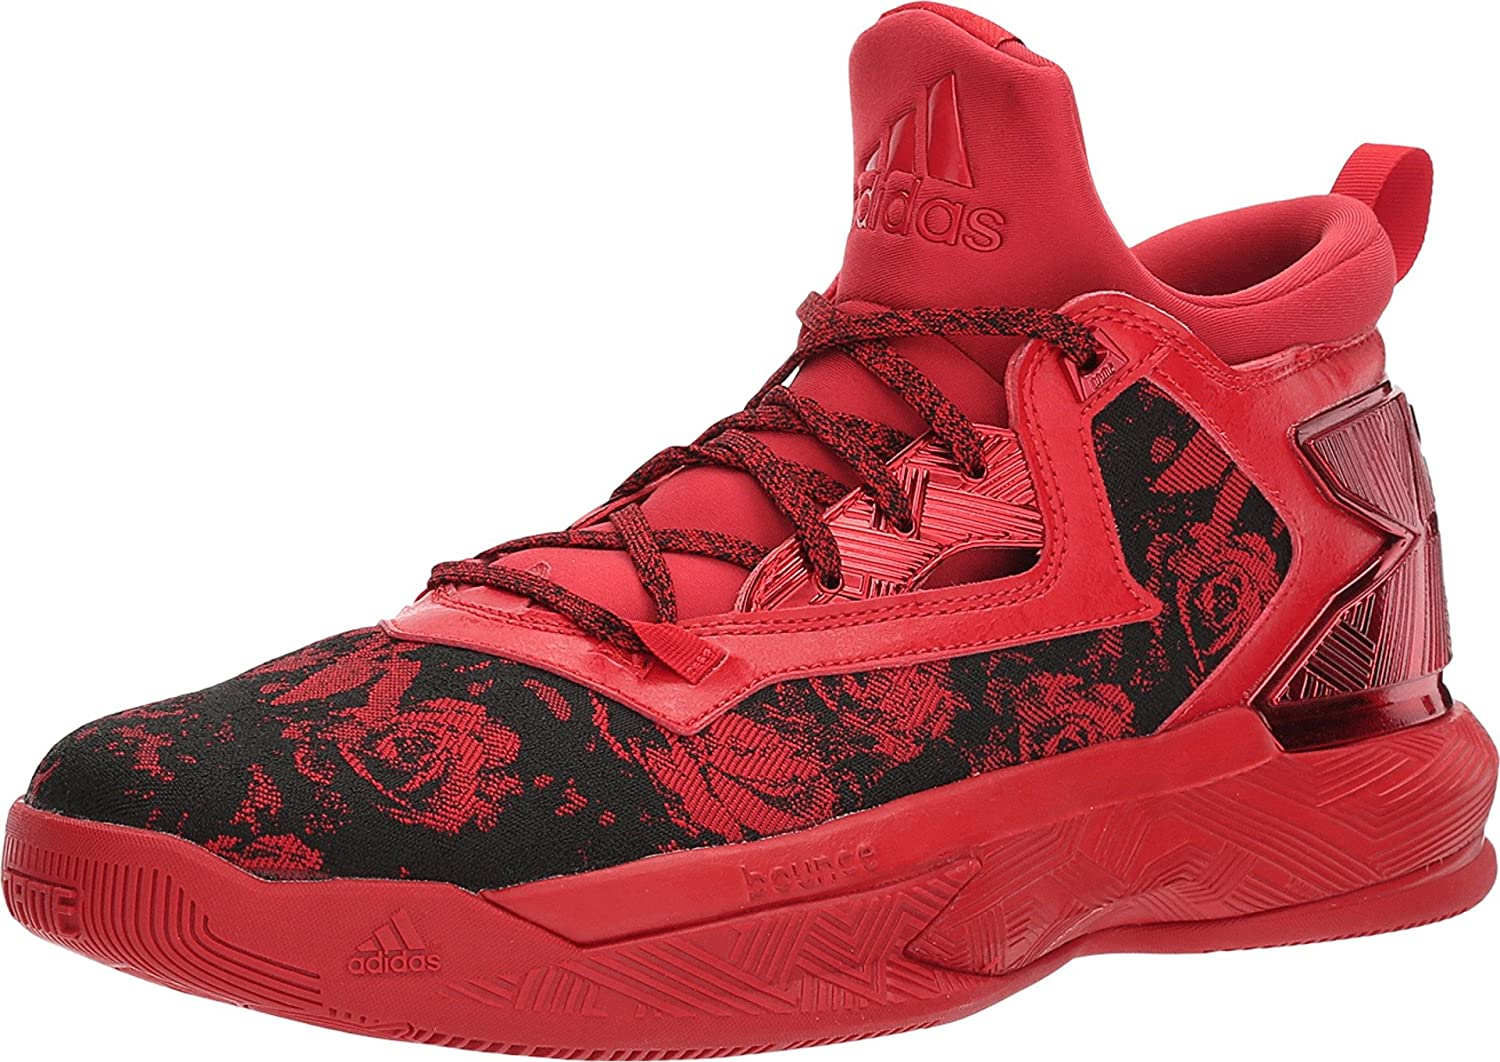 huge selection of ddd55 9f034 Amazon.com  adidas D Lillard 2 Mens Basketball Shoe  Basketb